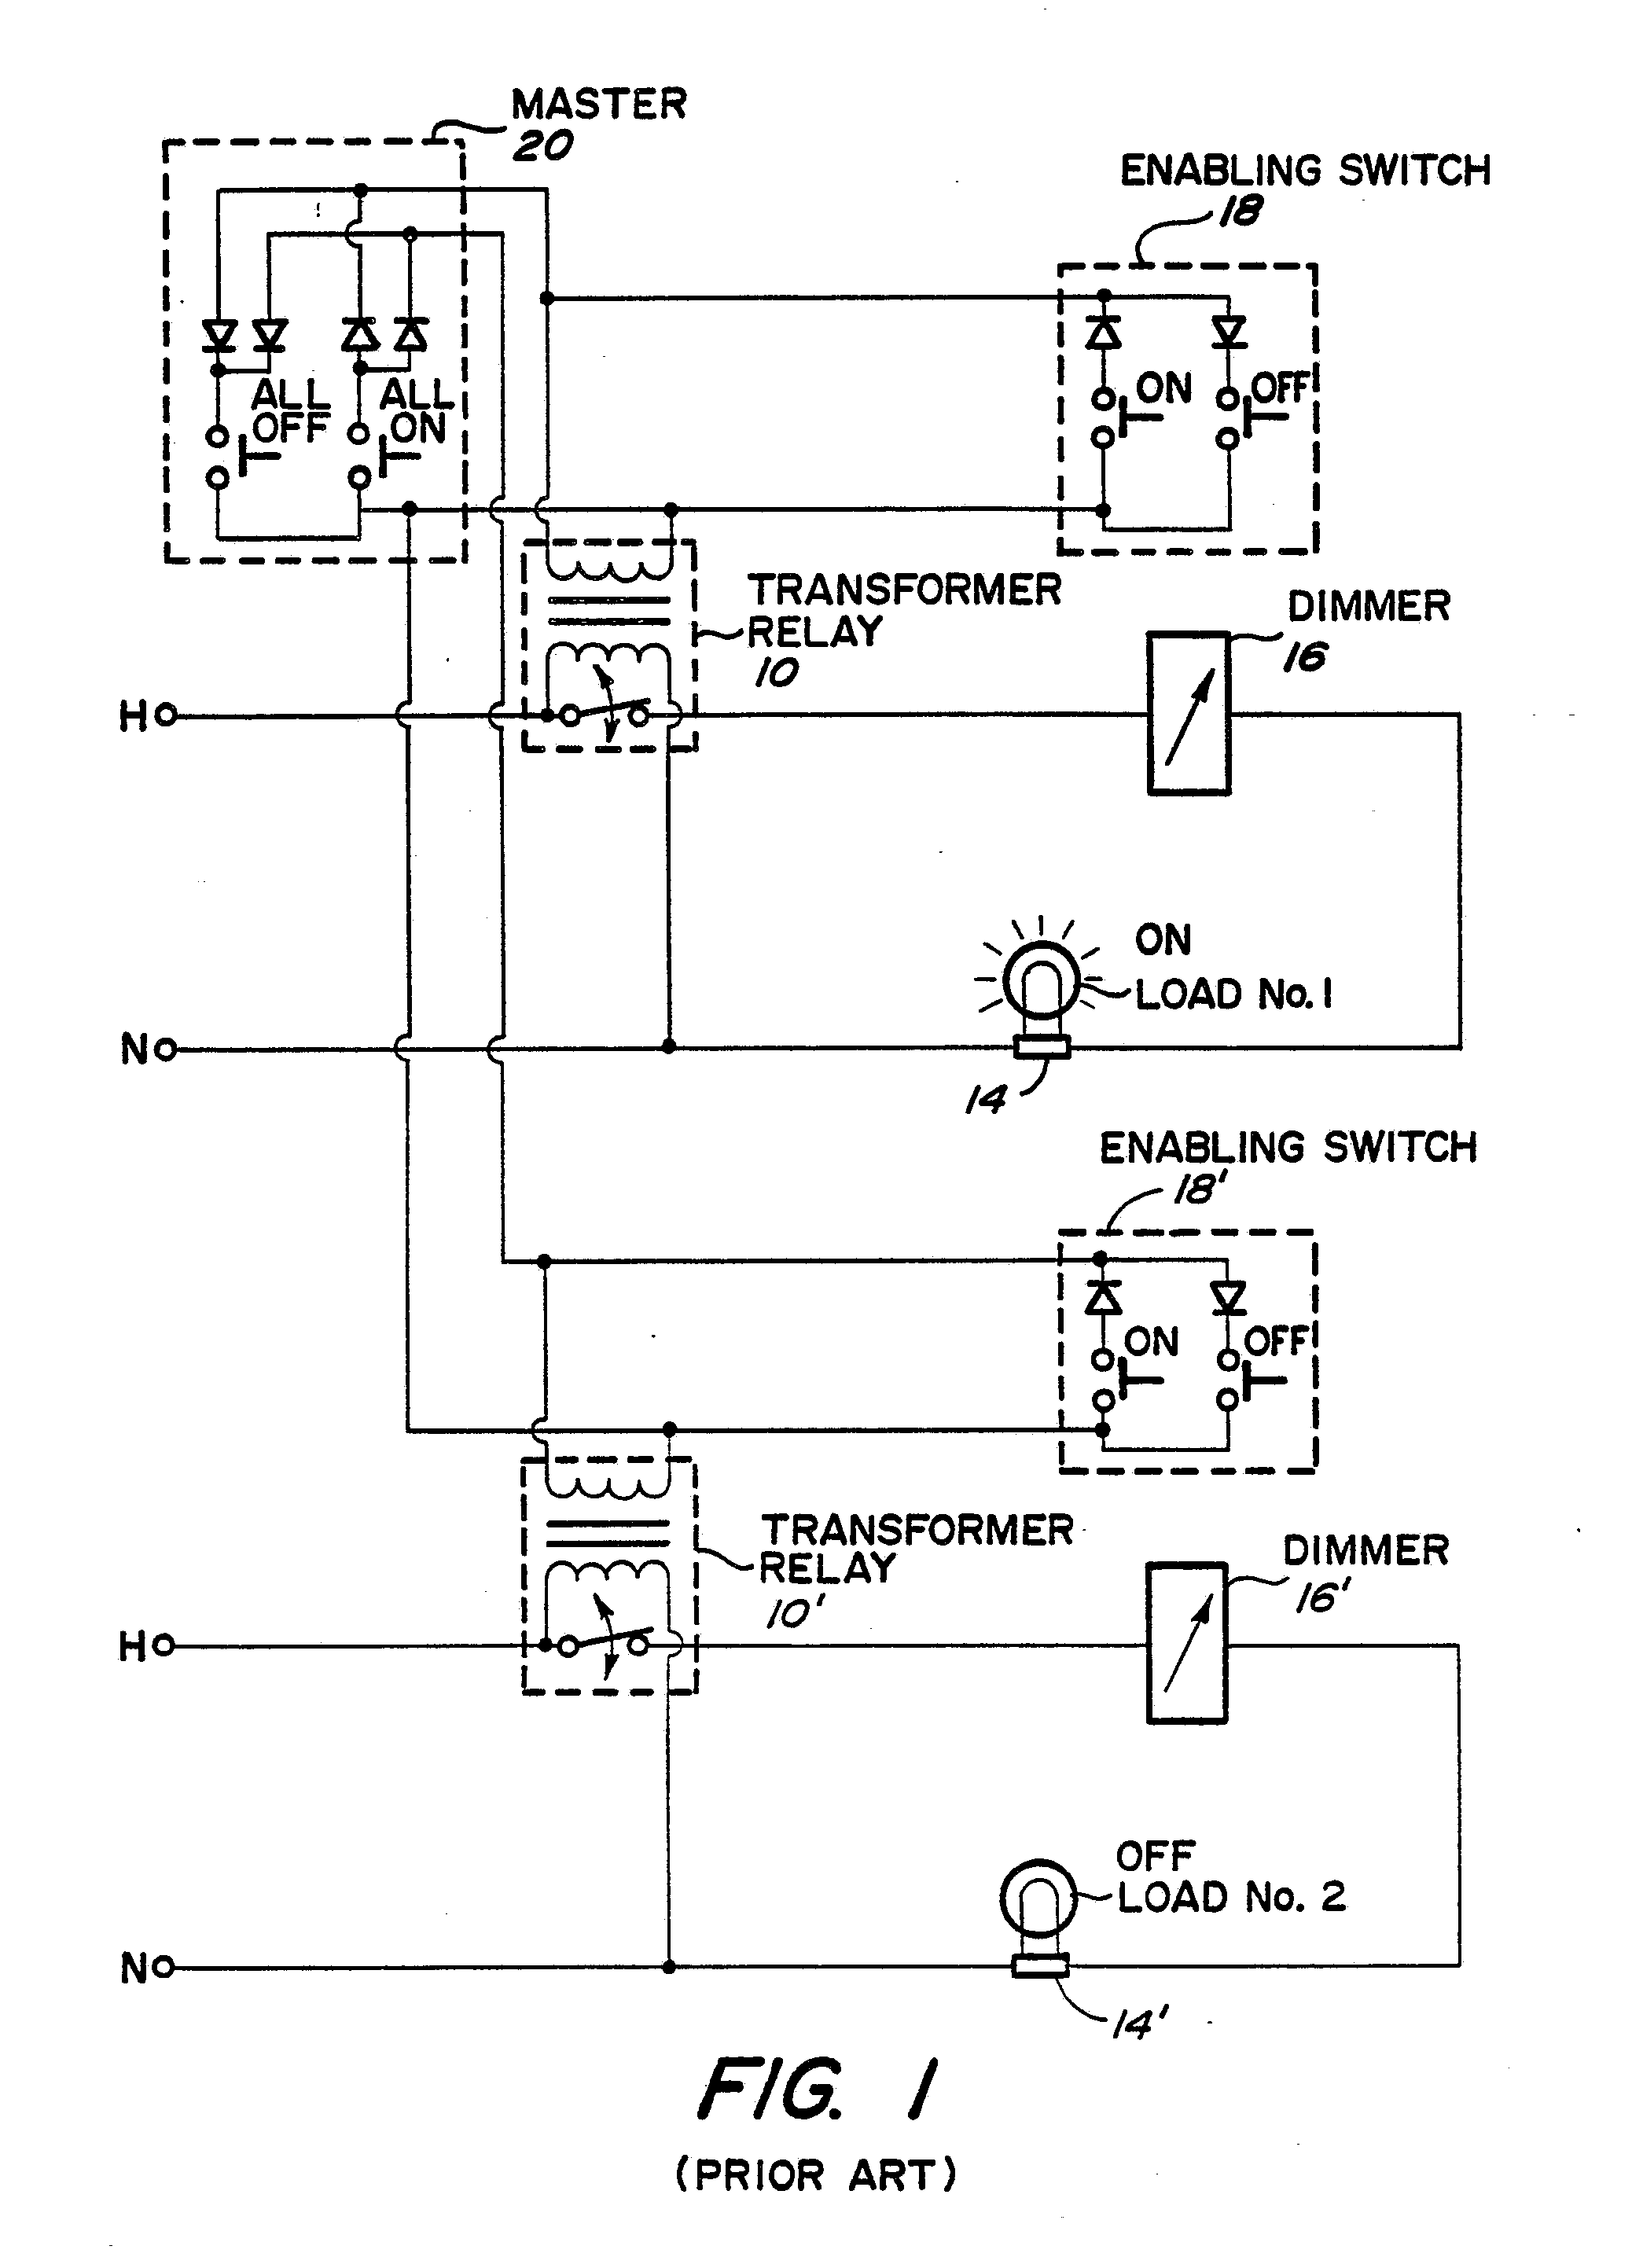 imgf0001 patent ep0361734a1 master electrical load control google patents bticino wiring diagram at soozxer.org